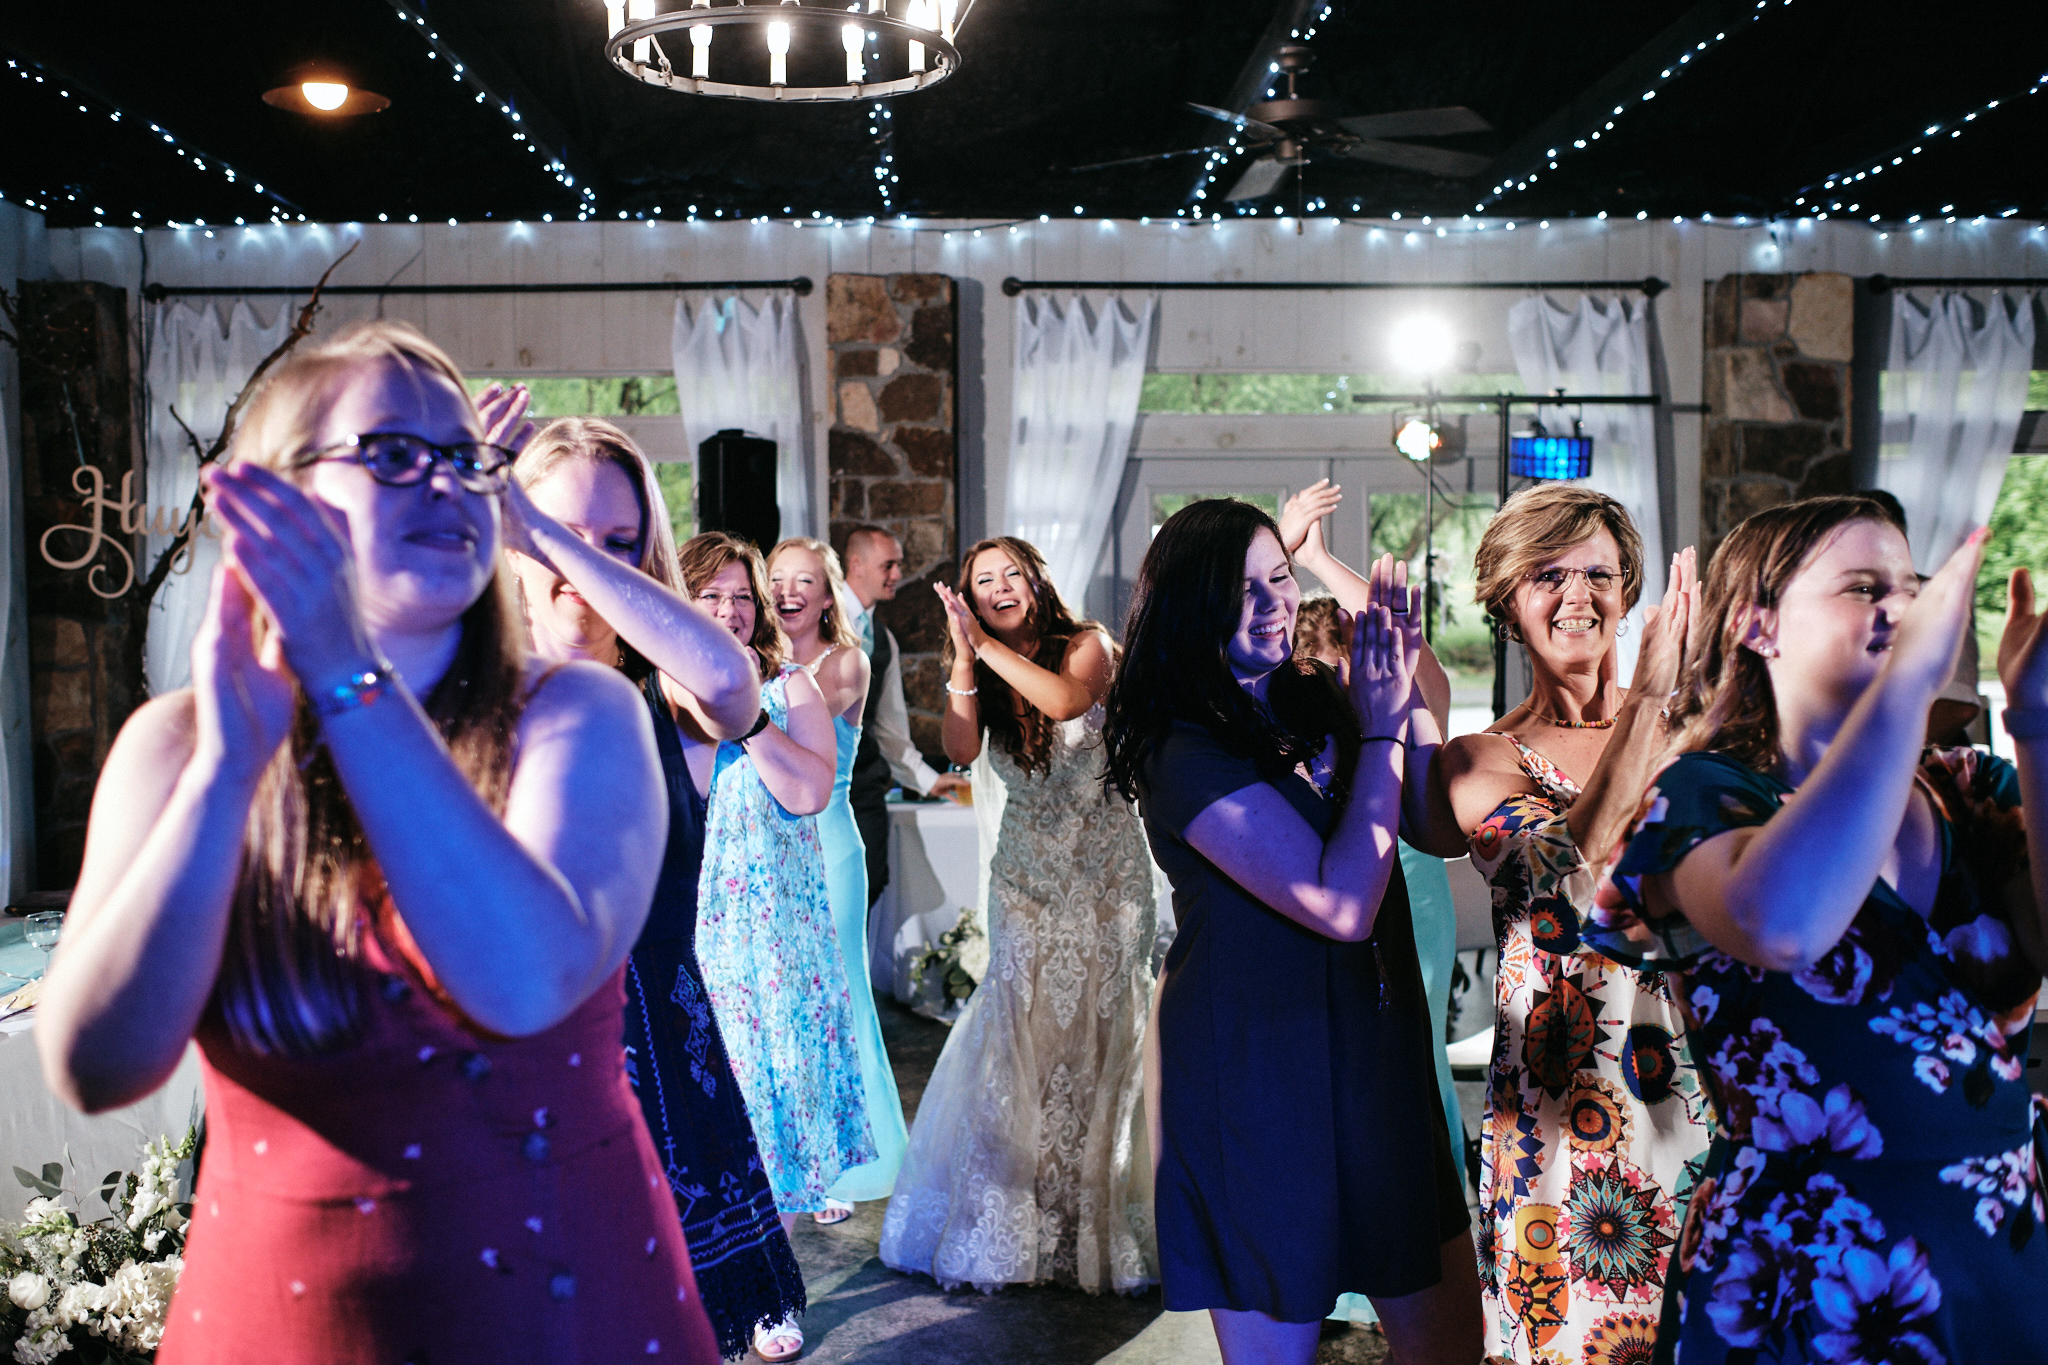 Dance party during reception